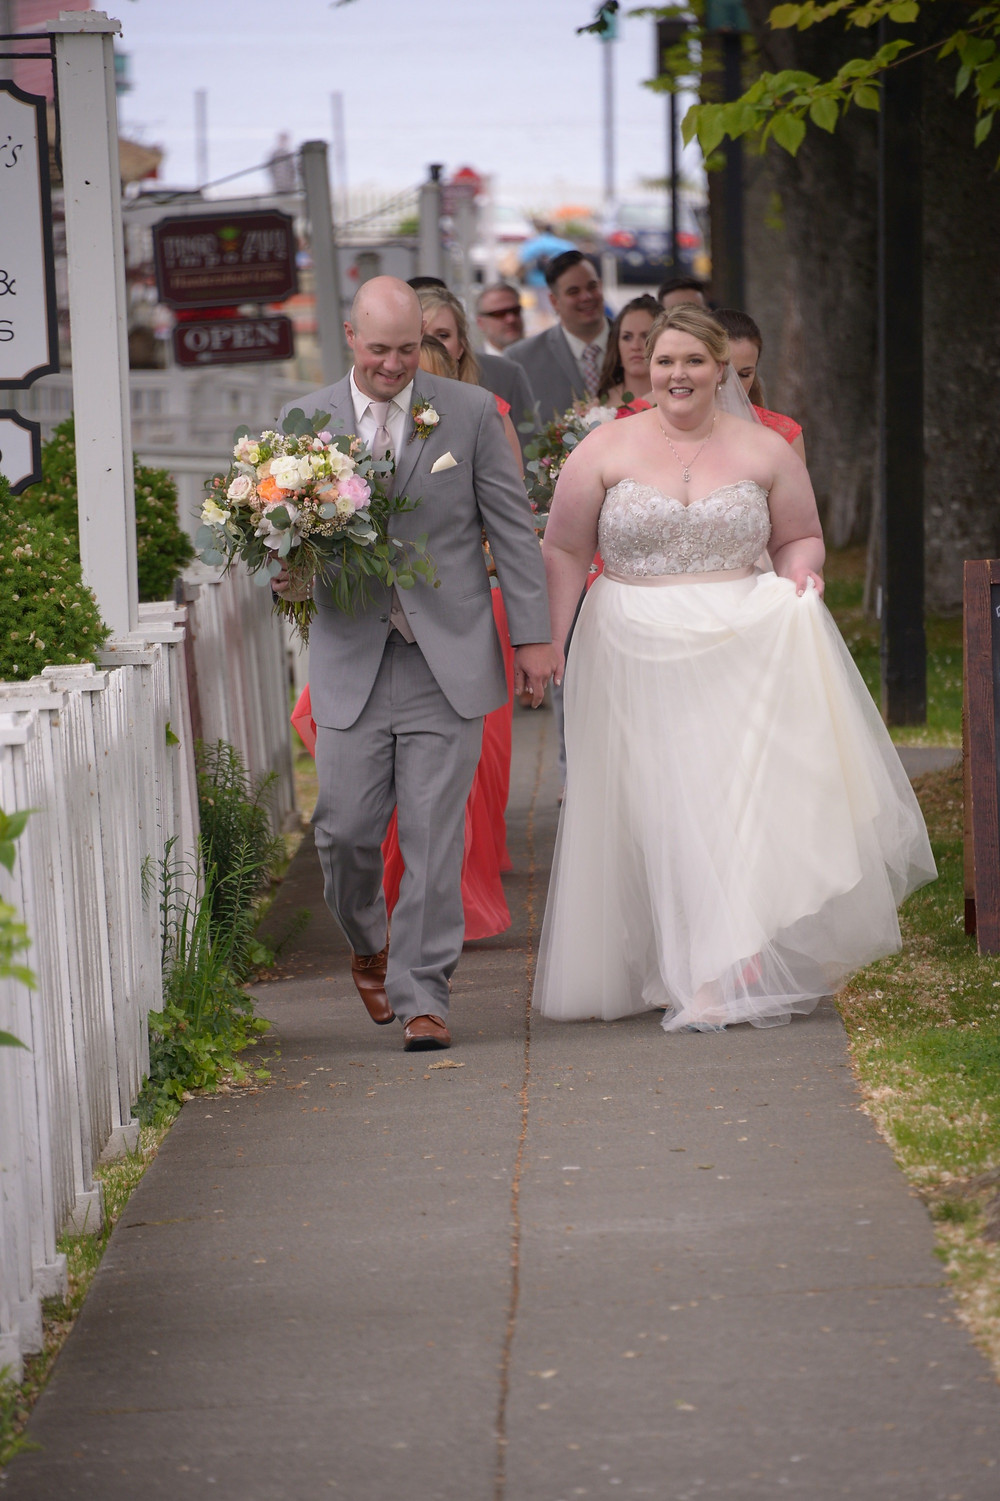 bridal party walking in quaint town of Port Gamble